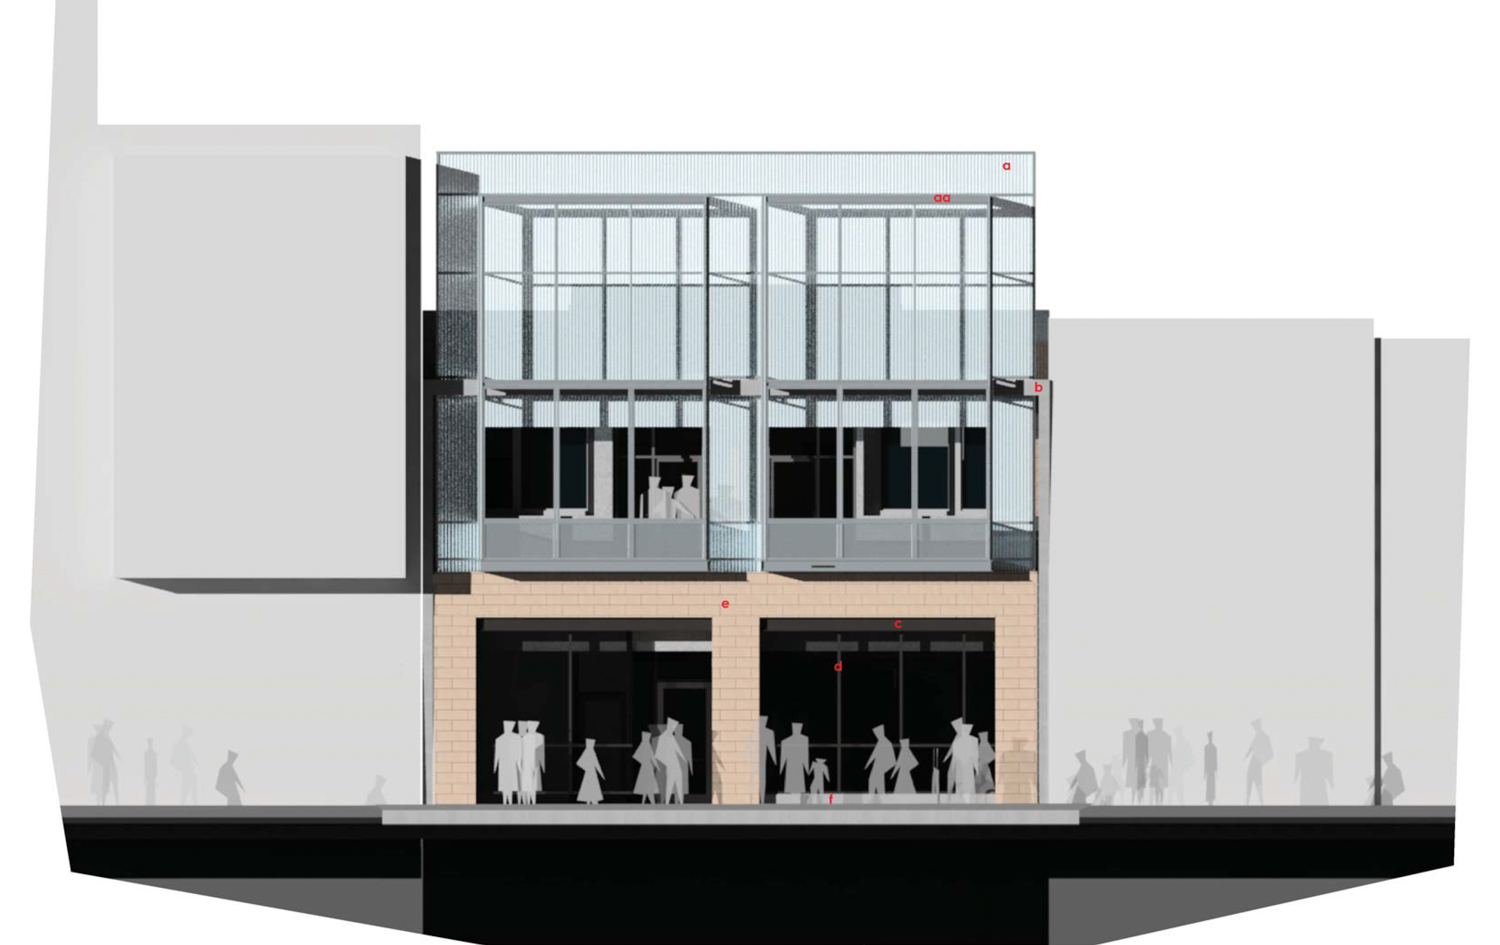 918 J Street facade elevation, image via Griffith Architects